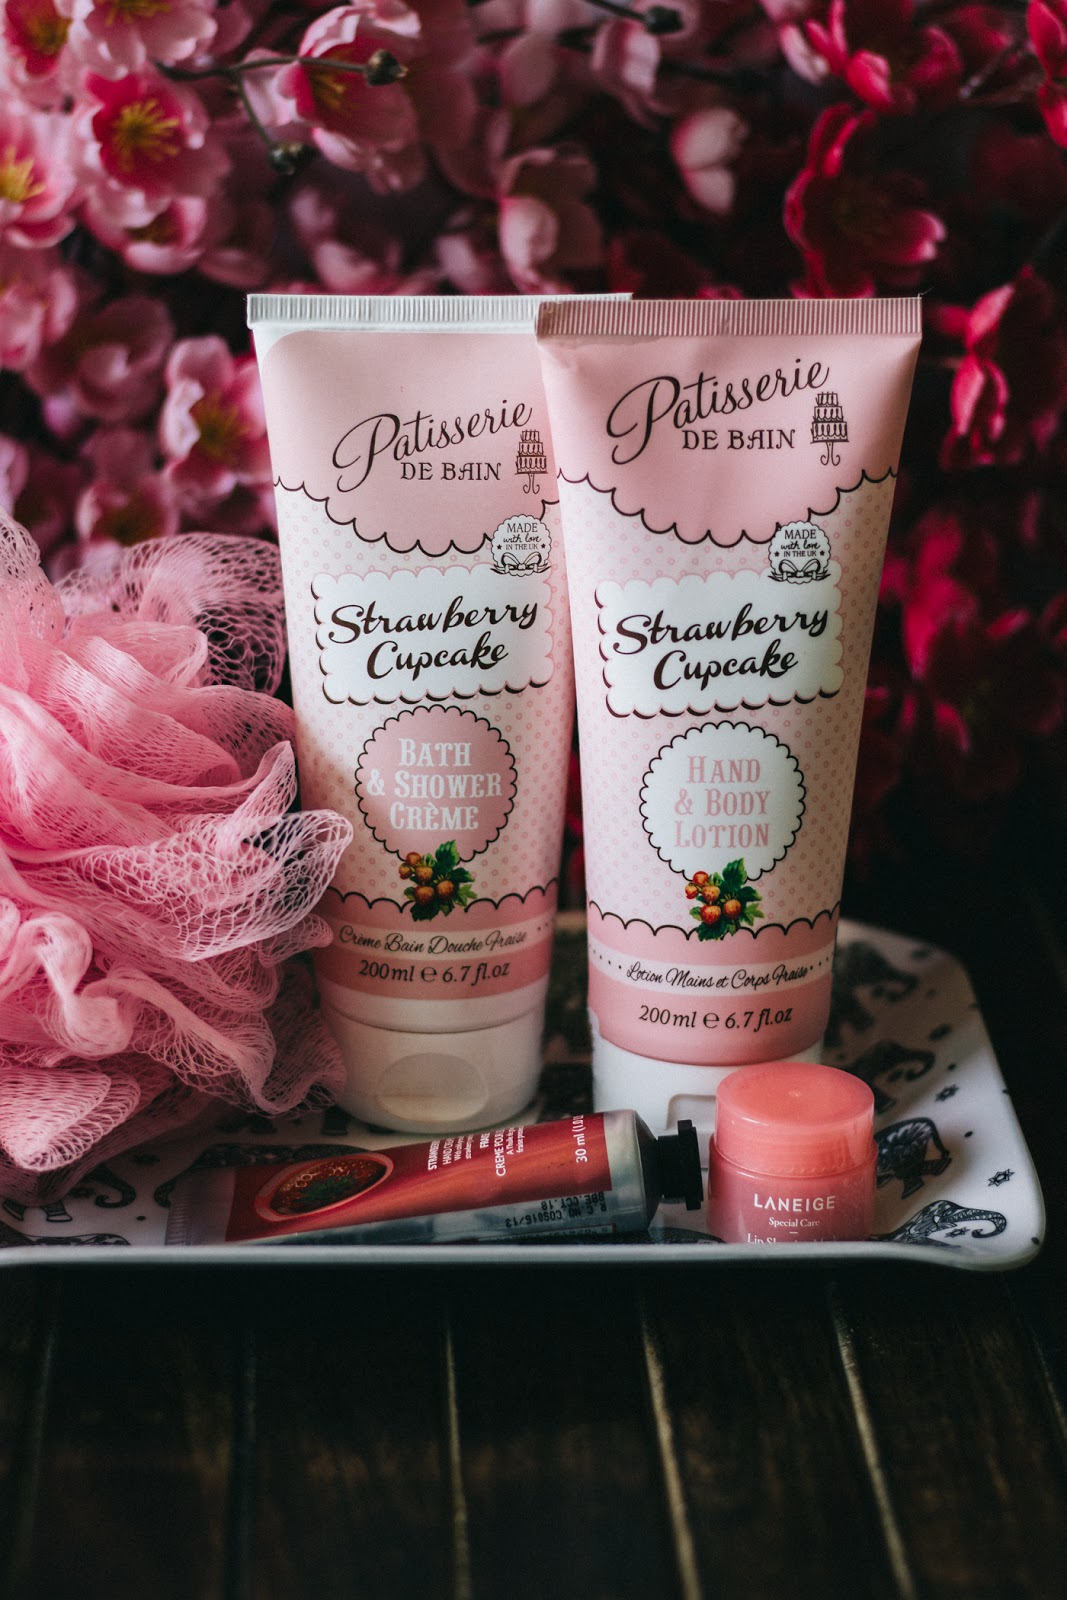 pattiserie-de-bain-strawberry-cupcake-hand-body-lotion-bath-shower-creme-review